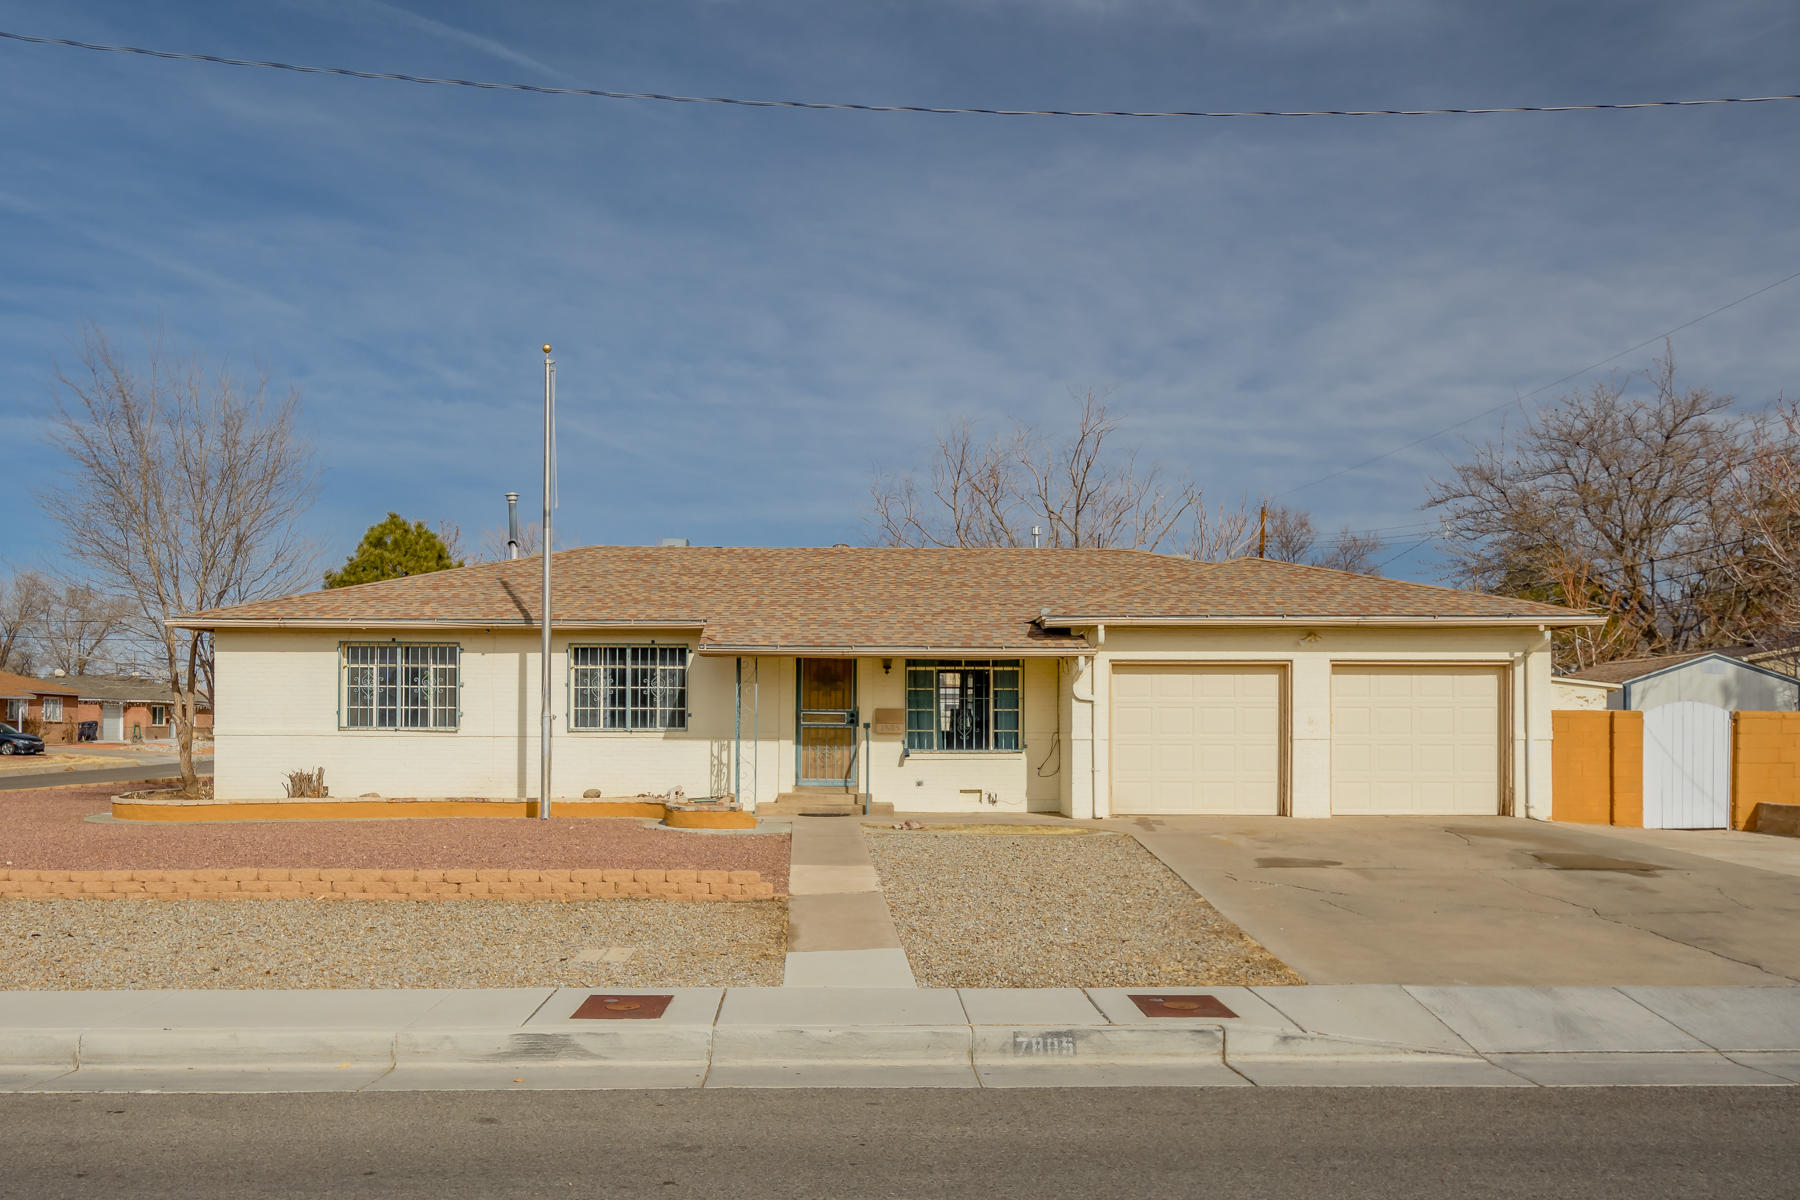 7805 CUTLER Avenue, Albuquerque NM 87110